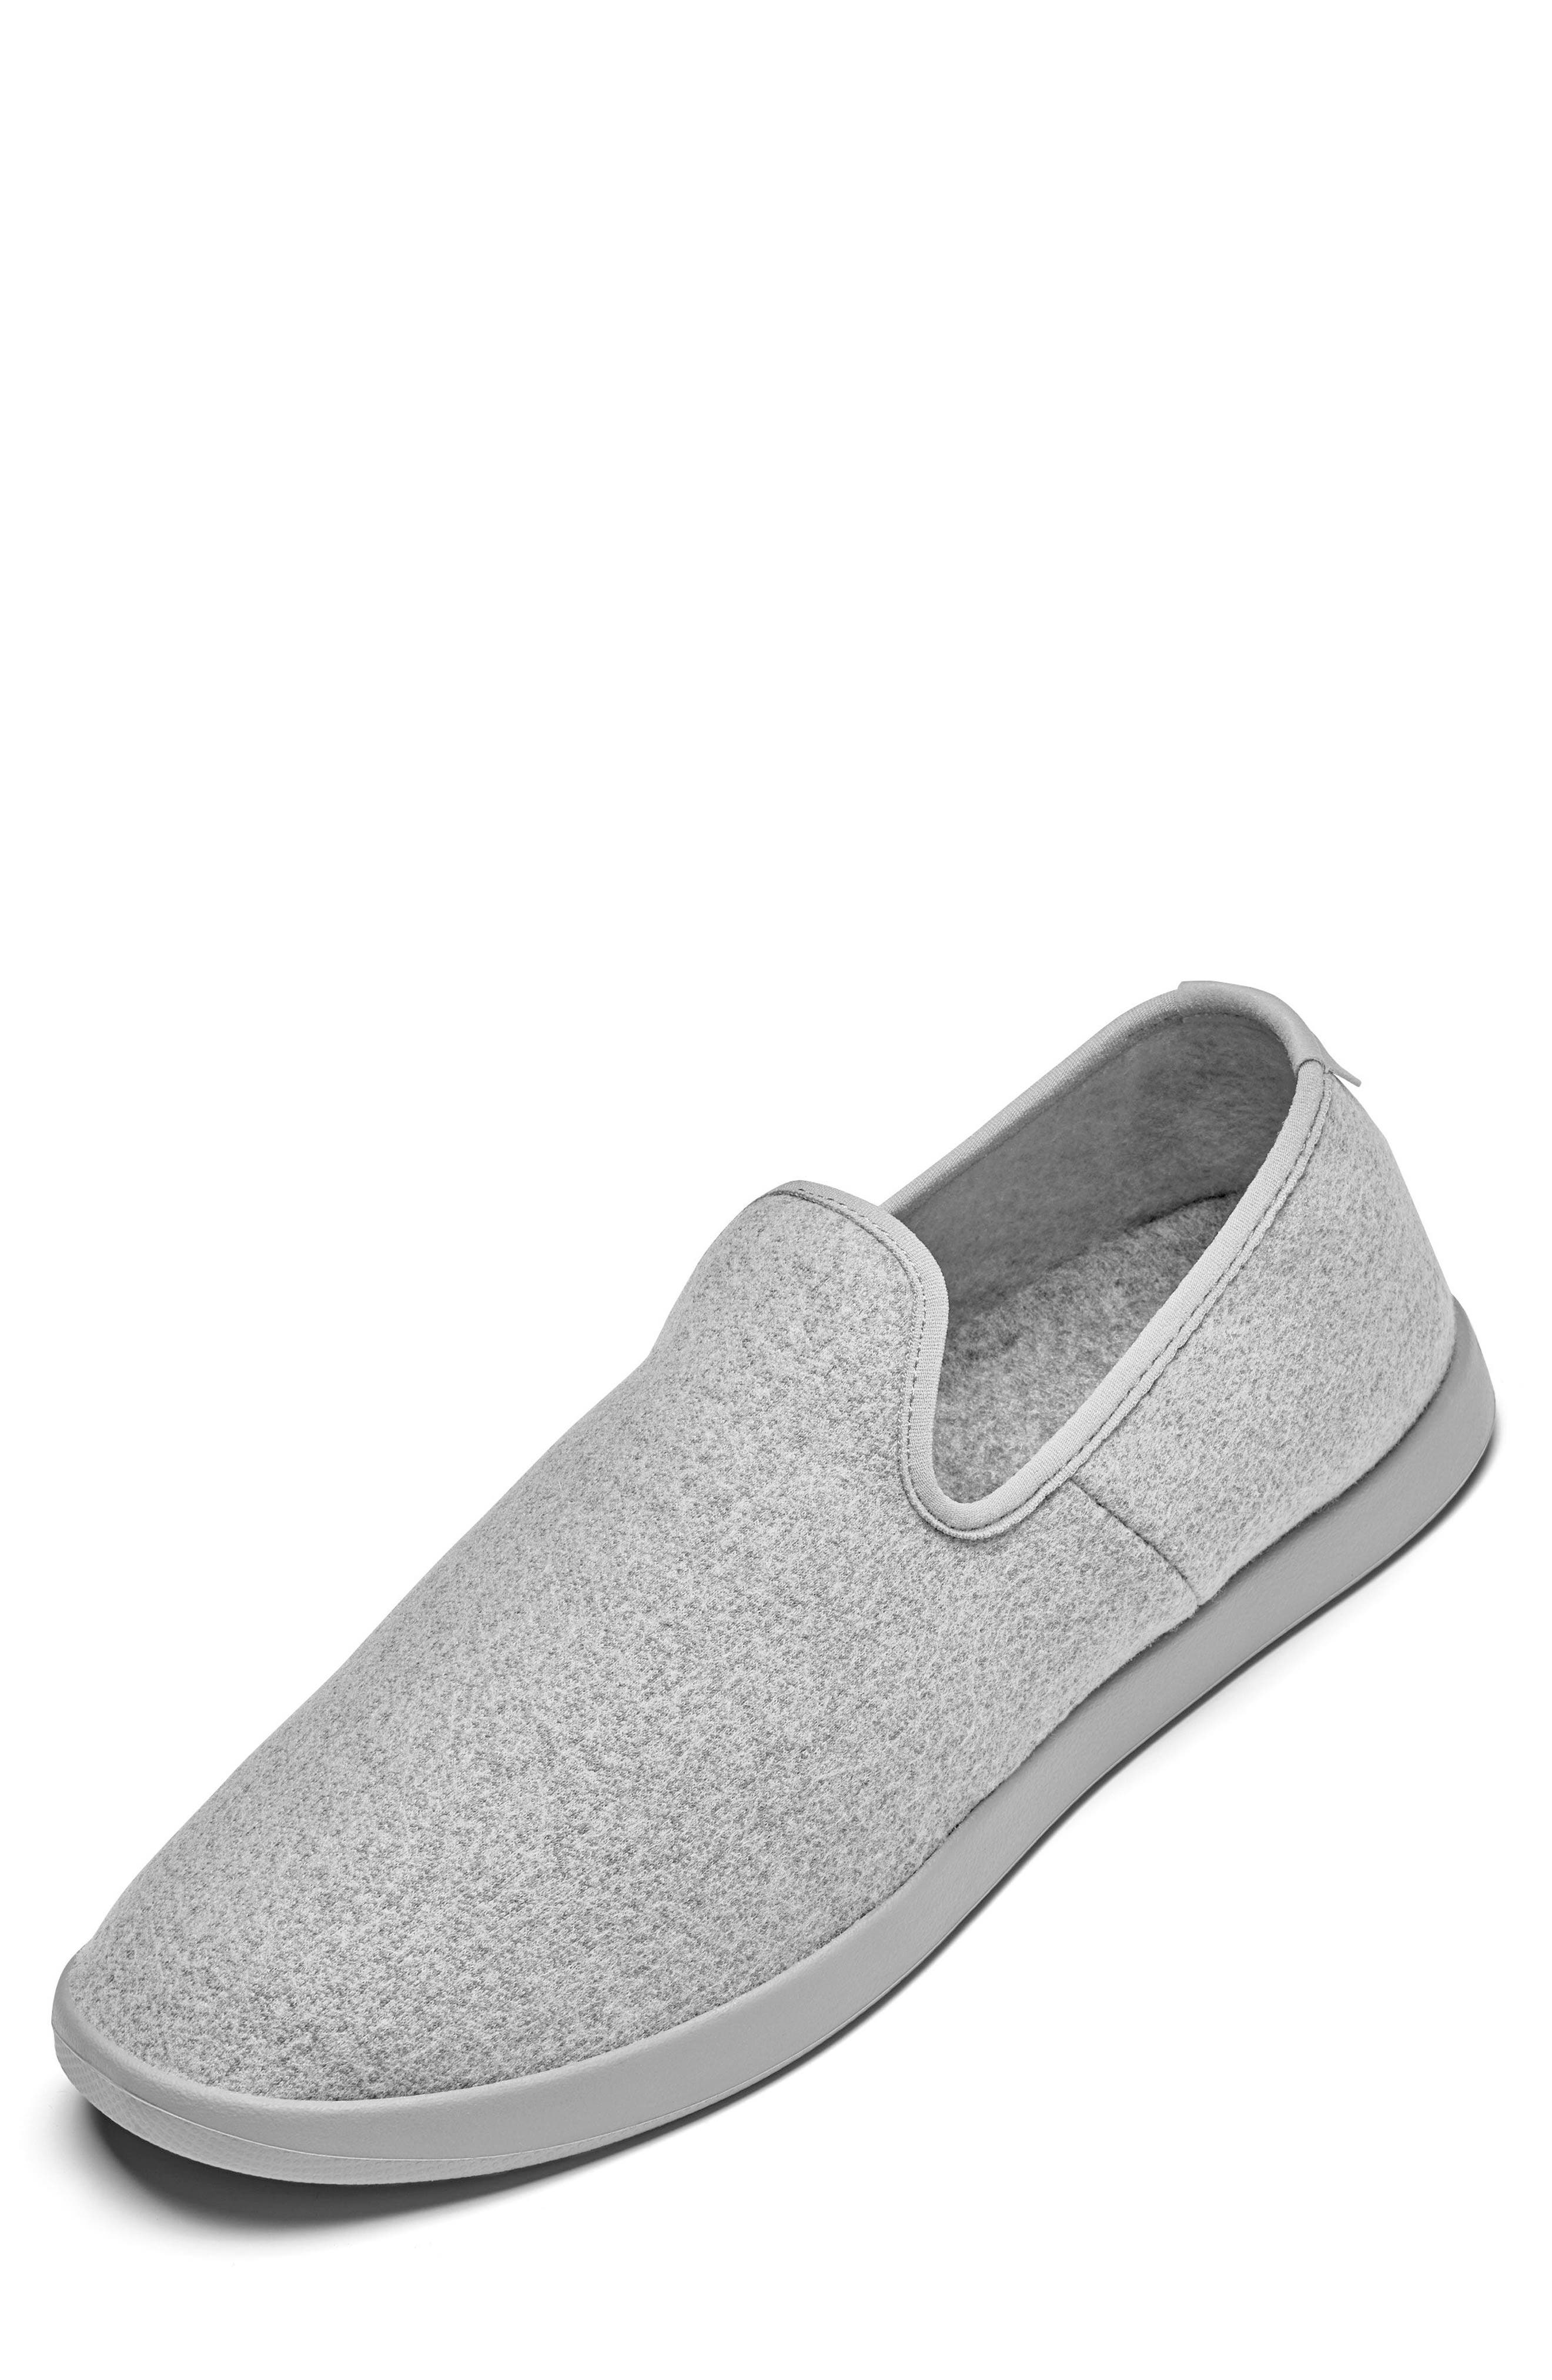 Wool Lounger,                         Main,                         color, Sf Grey